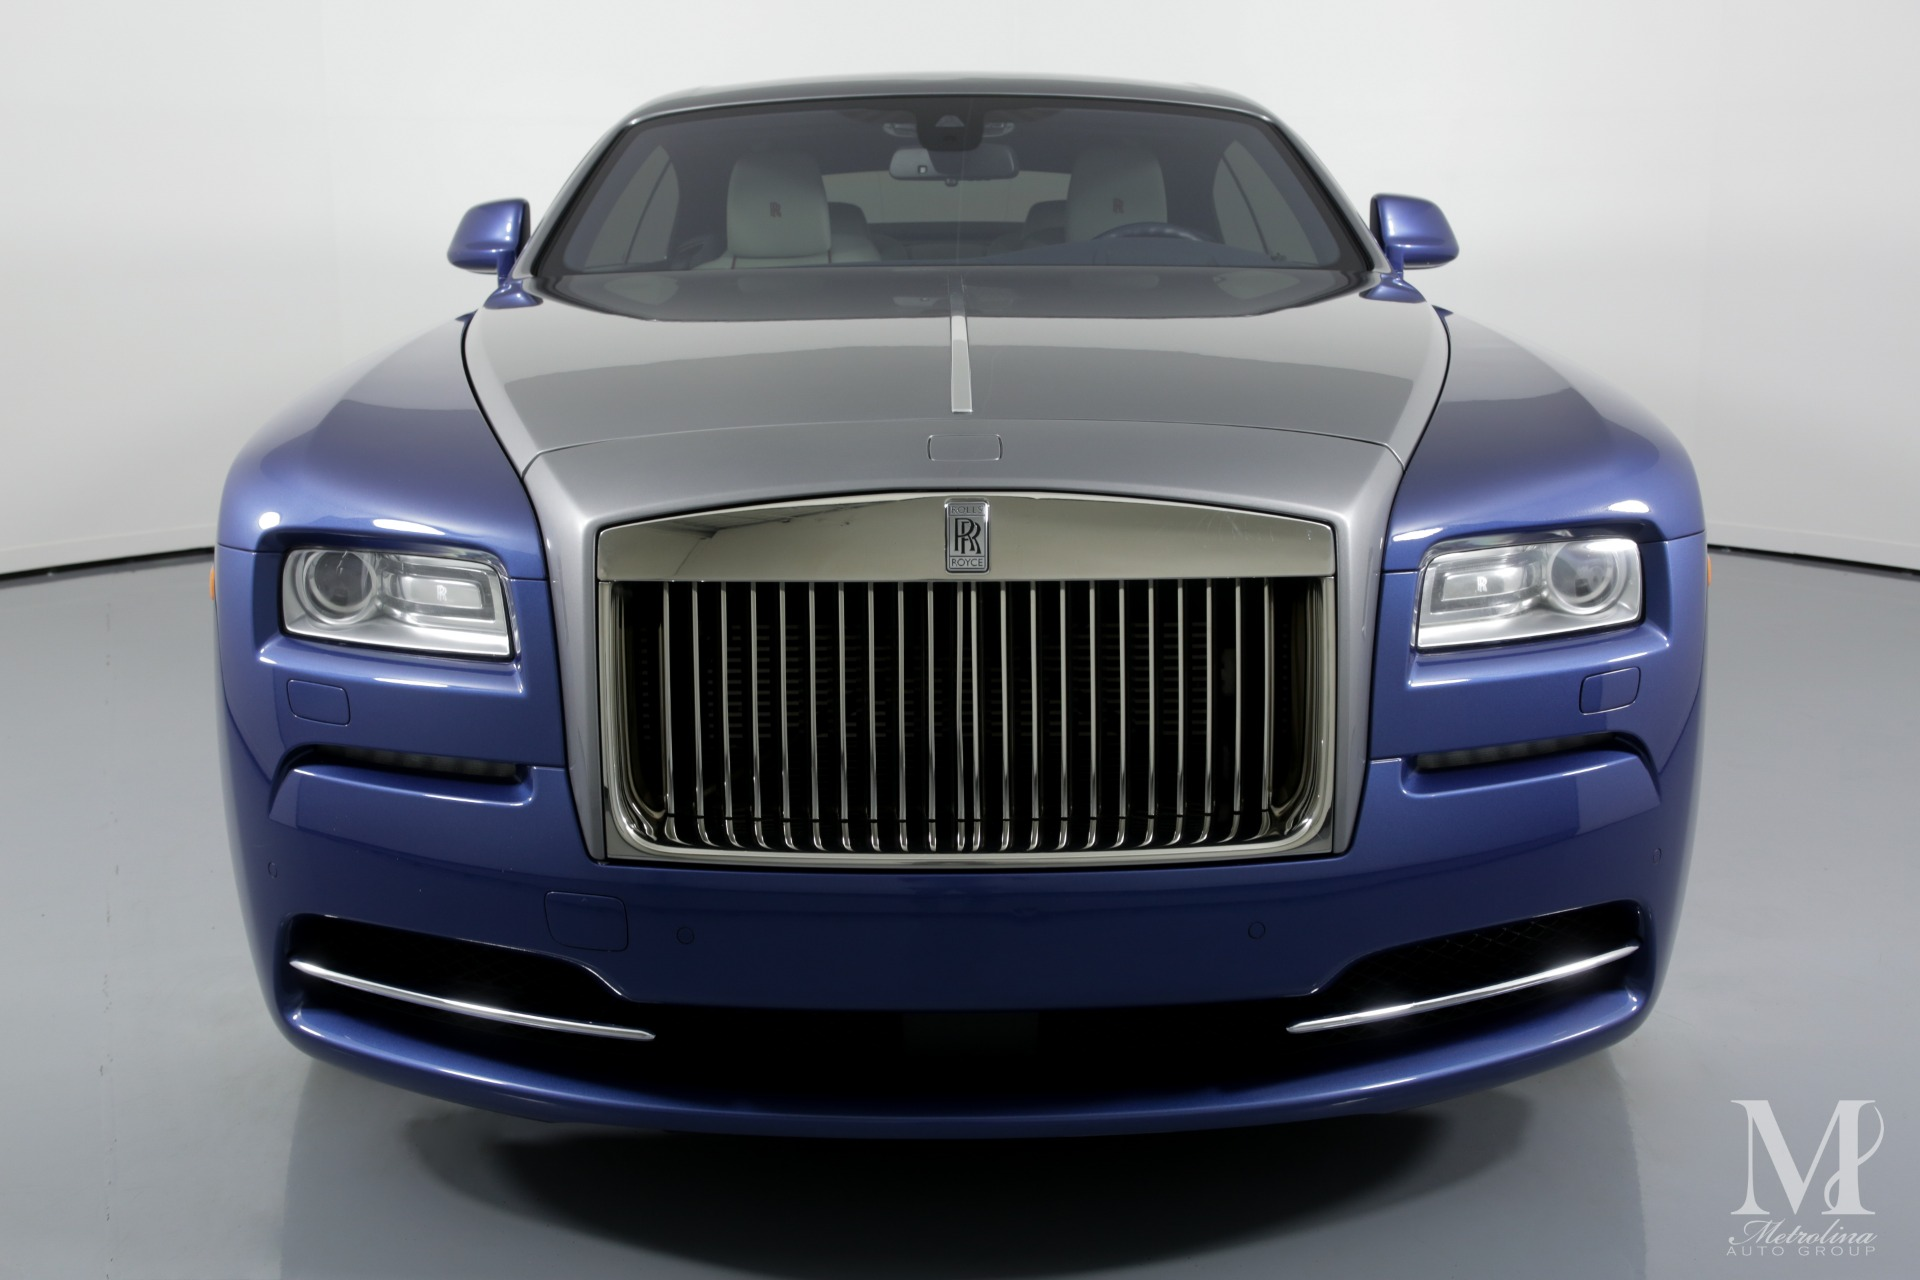 Used 2015 Rolls-Royce Wraith Base 2dr Coupe for sale Sold at Metrolina Auto Group in Charlotte NC 28217 - 3